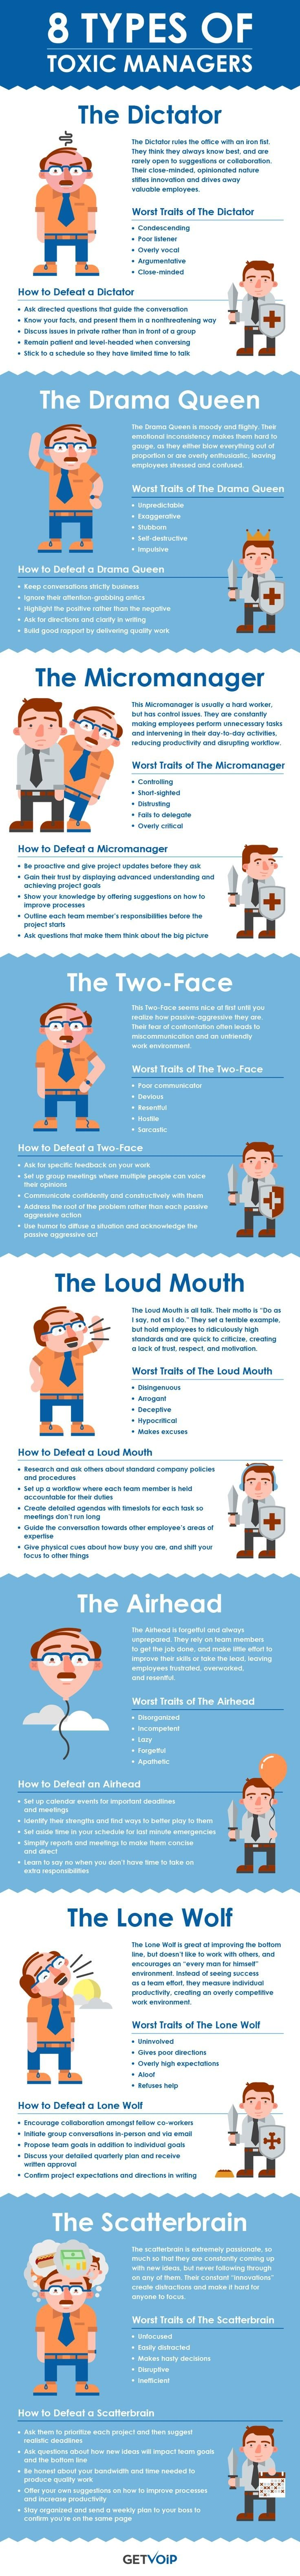 Eight types of toxic managers #Infographic